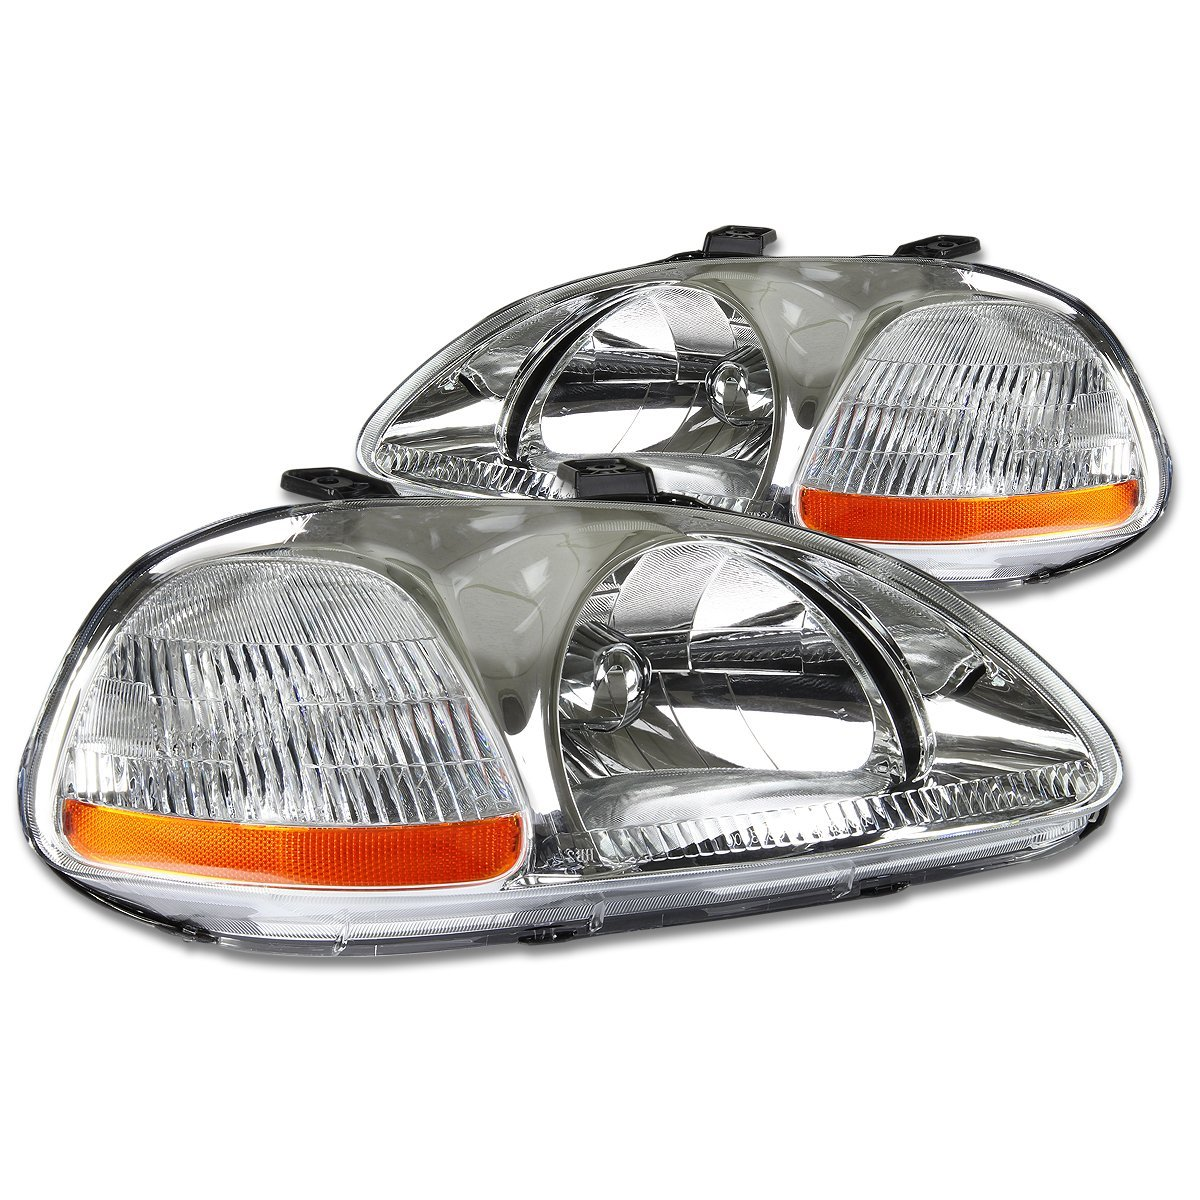 DNAMotoring HL-OH-HC96-CH-AM Headlight Assembly, Driver and Passenger Side DNA Motoring